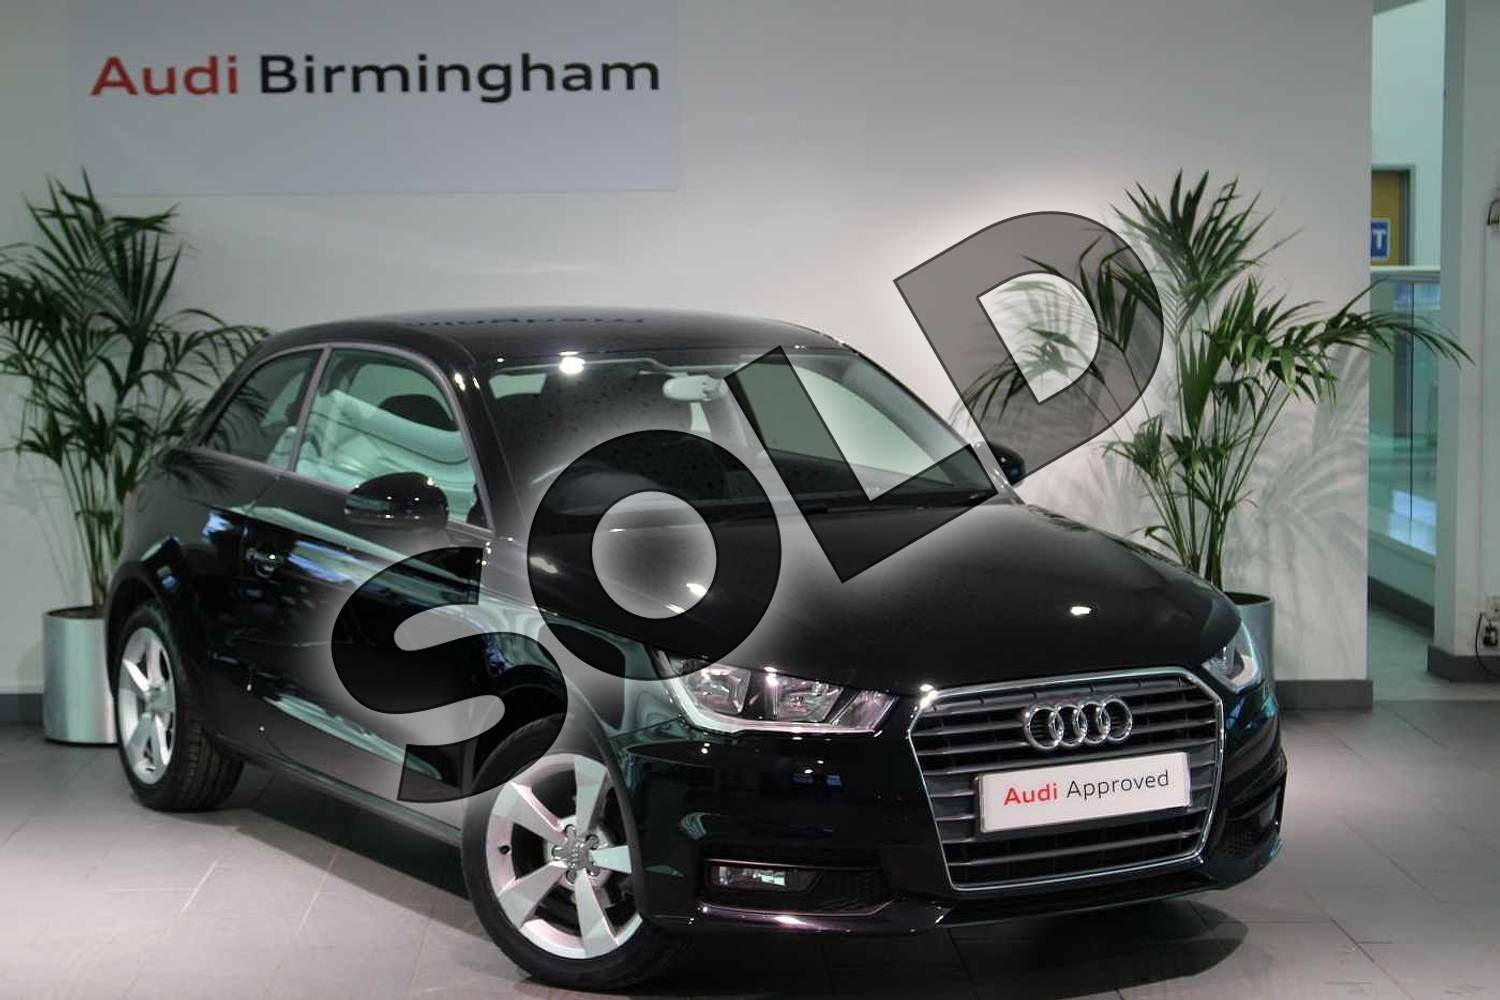 2018 Audi A1 Hatchback 1.0 TFSI Sport Nav 3dr in Myth Black Metallic at Birmingham Audi